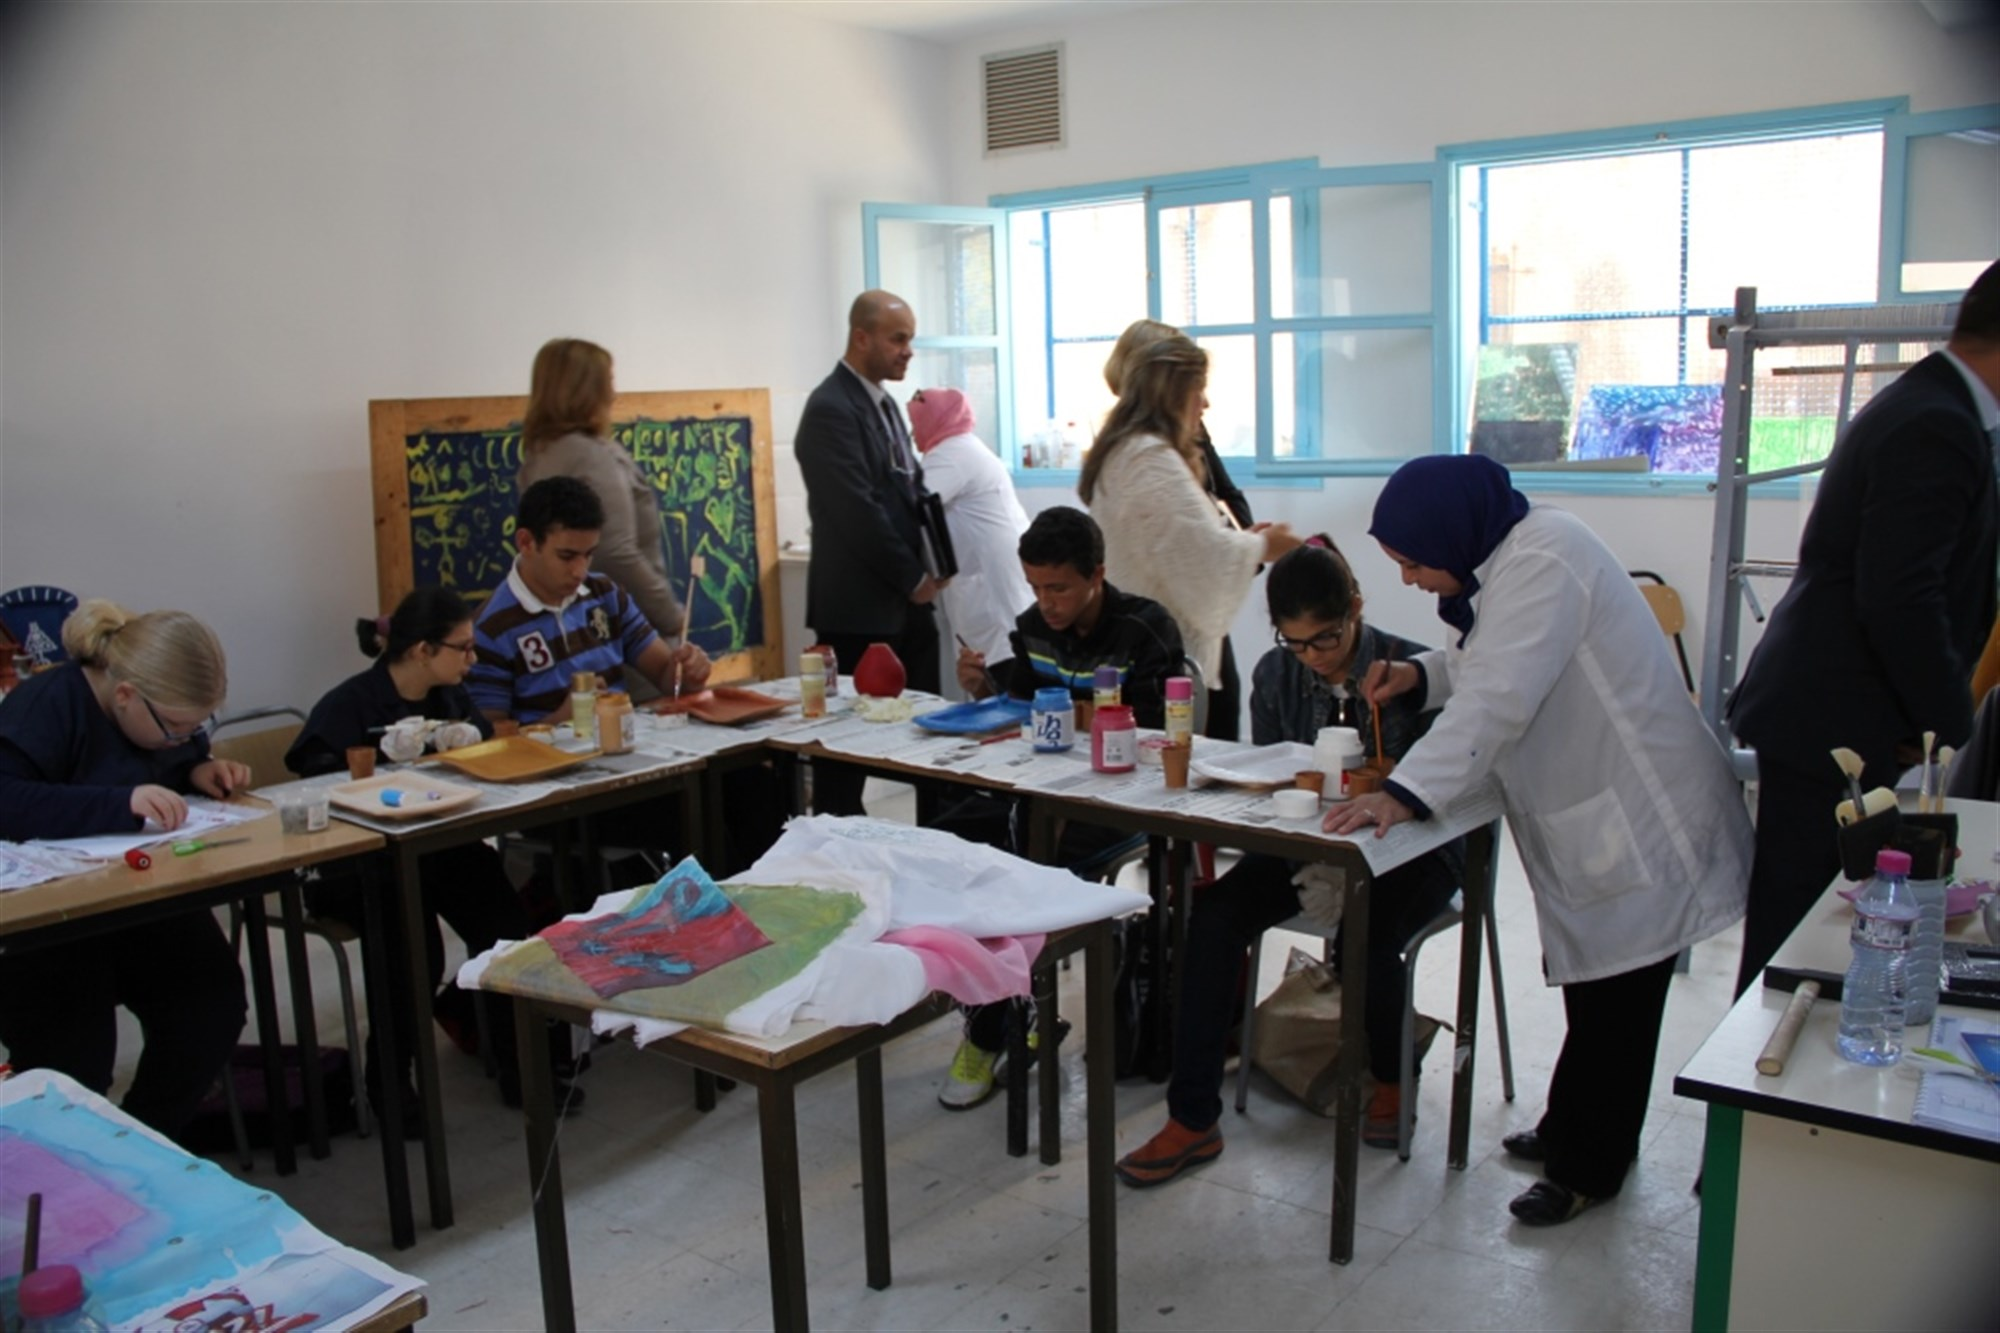 Students develop artistic abilities at the special education vocational training center in Ariana, Tunisia Nov. 3. A $675,000 extension to the center was funded by the AFRICOM Humanitarian Assistance Program.